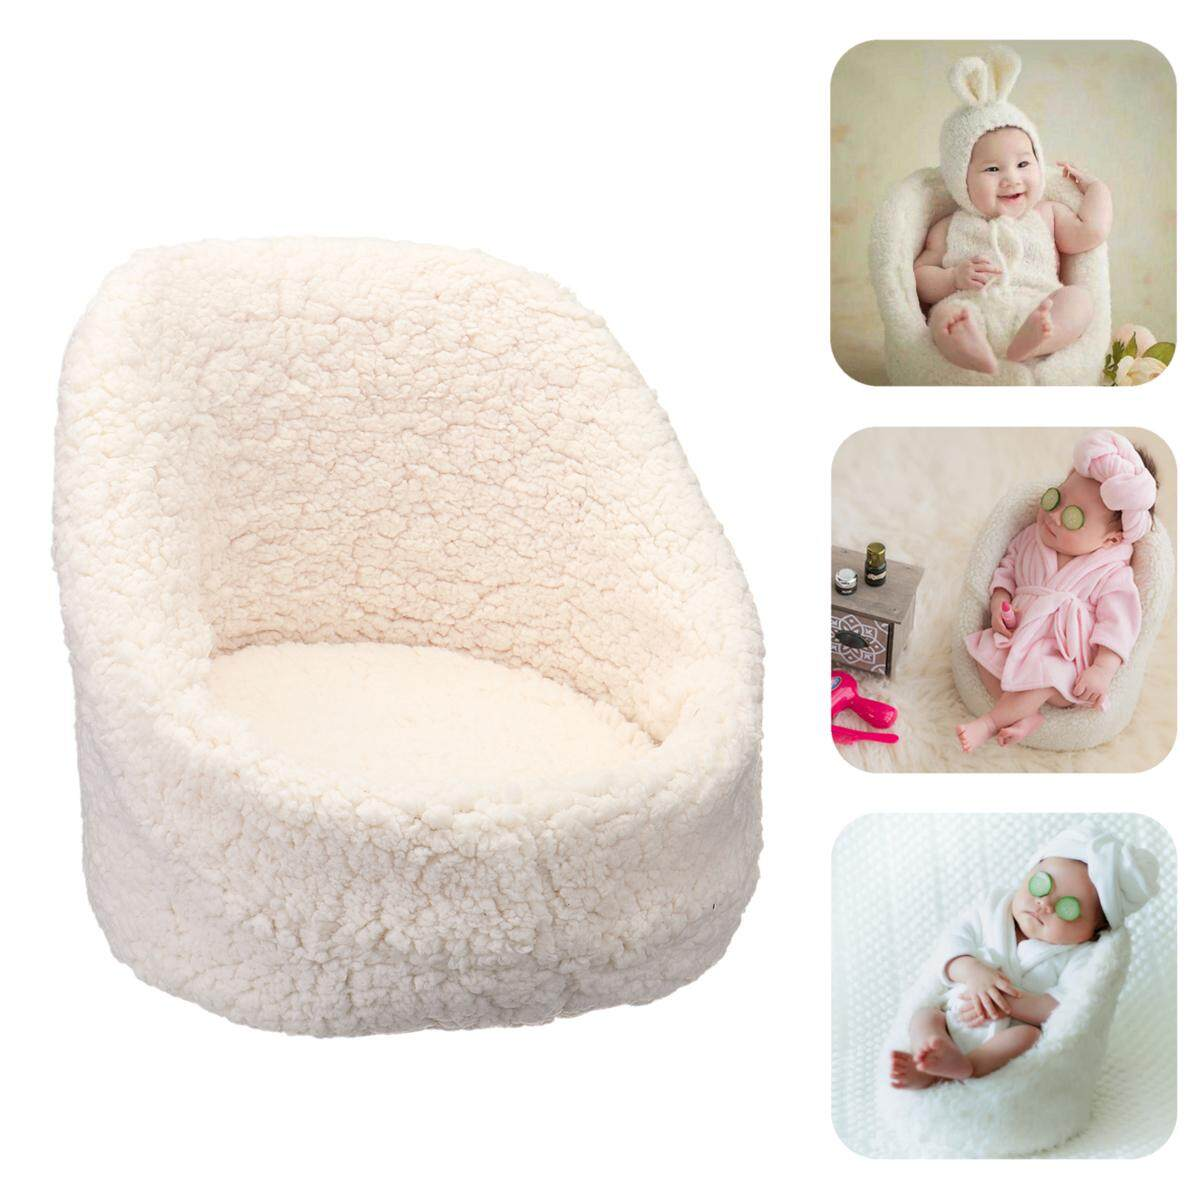 【Free Shipping + Flash Deal】Photo Props Small Sofa Seat Photography Shoot Aid for Newborn Baby Boys Girls